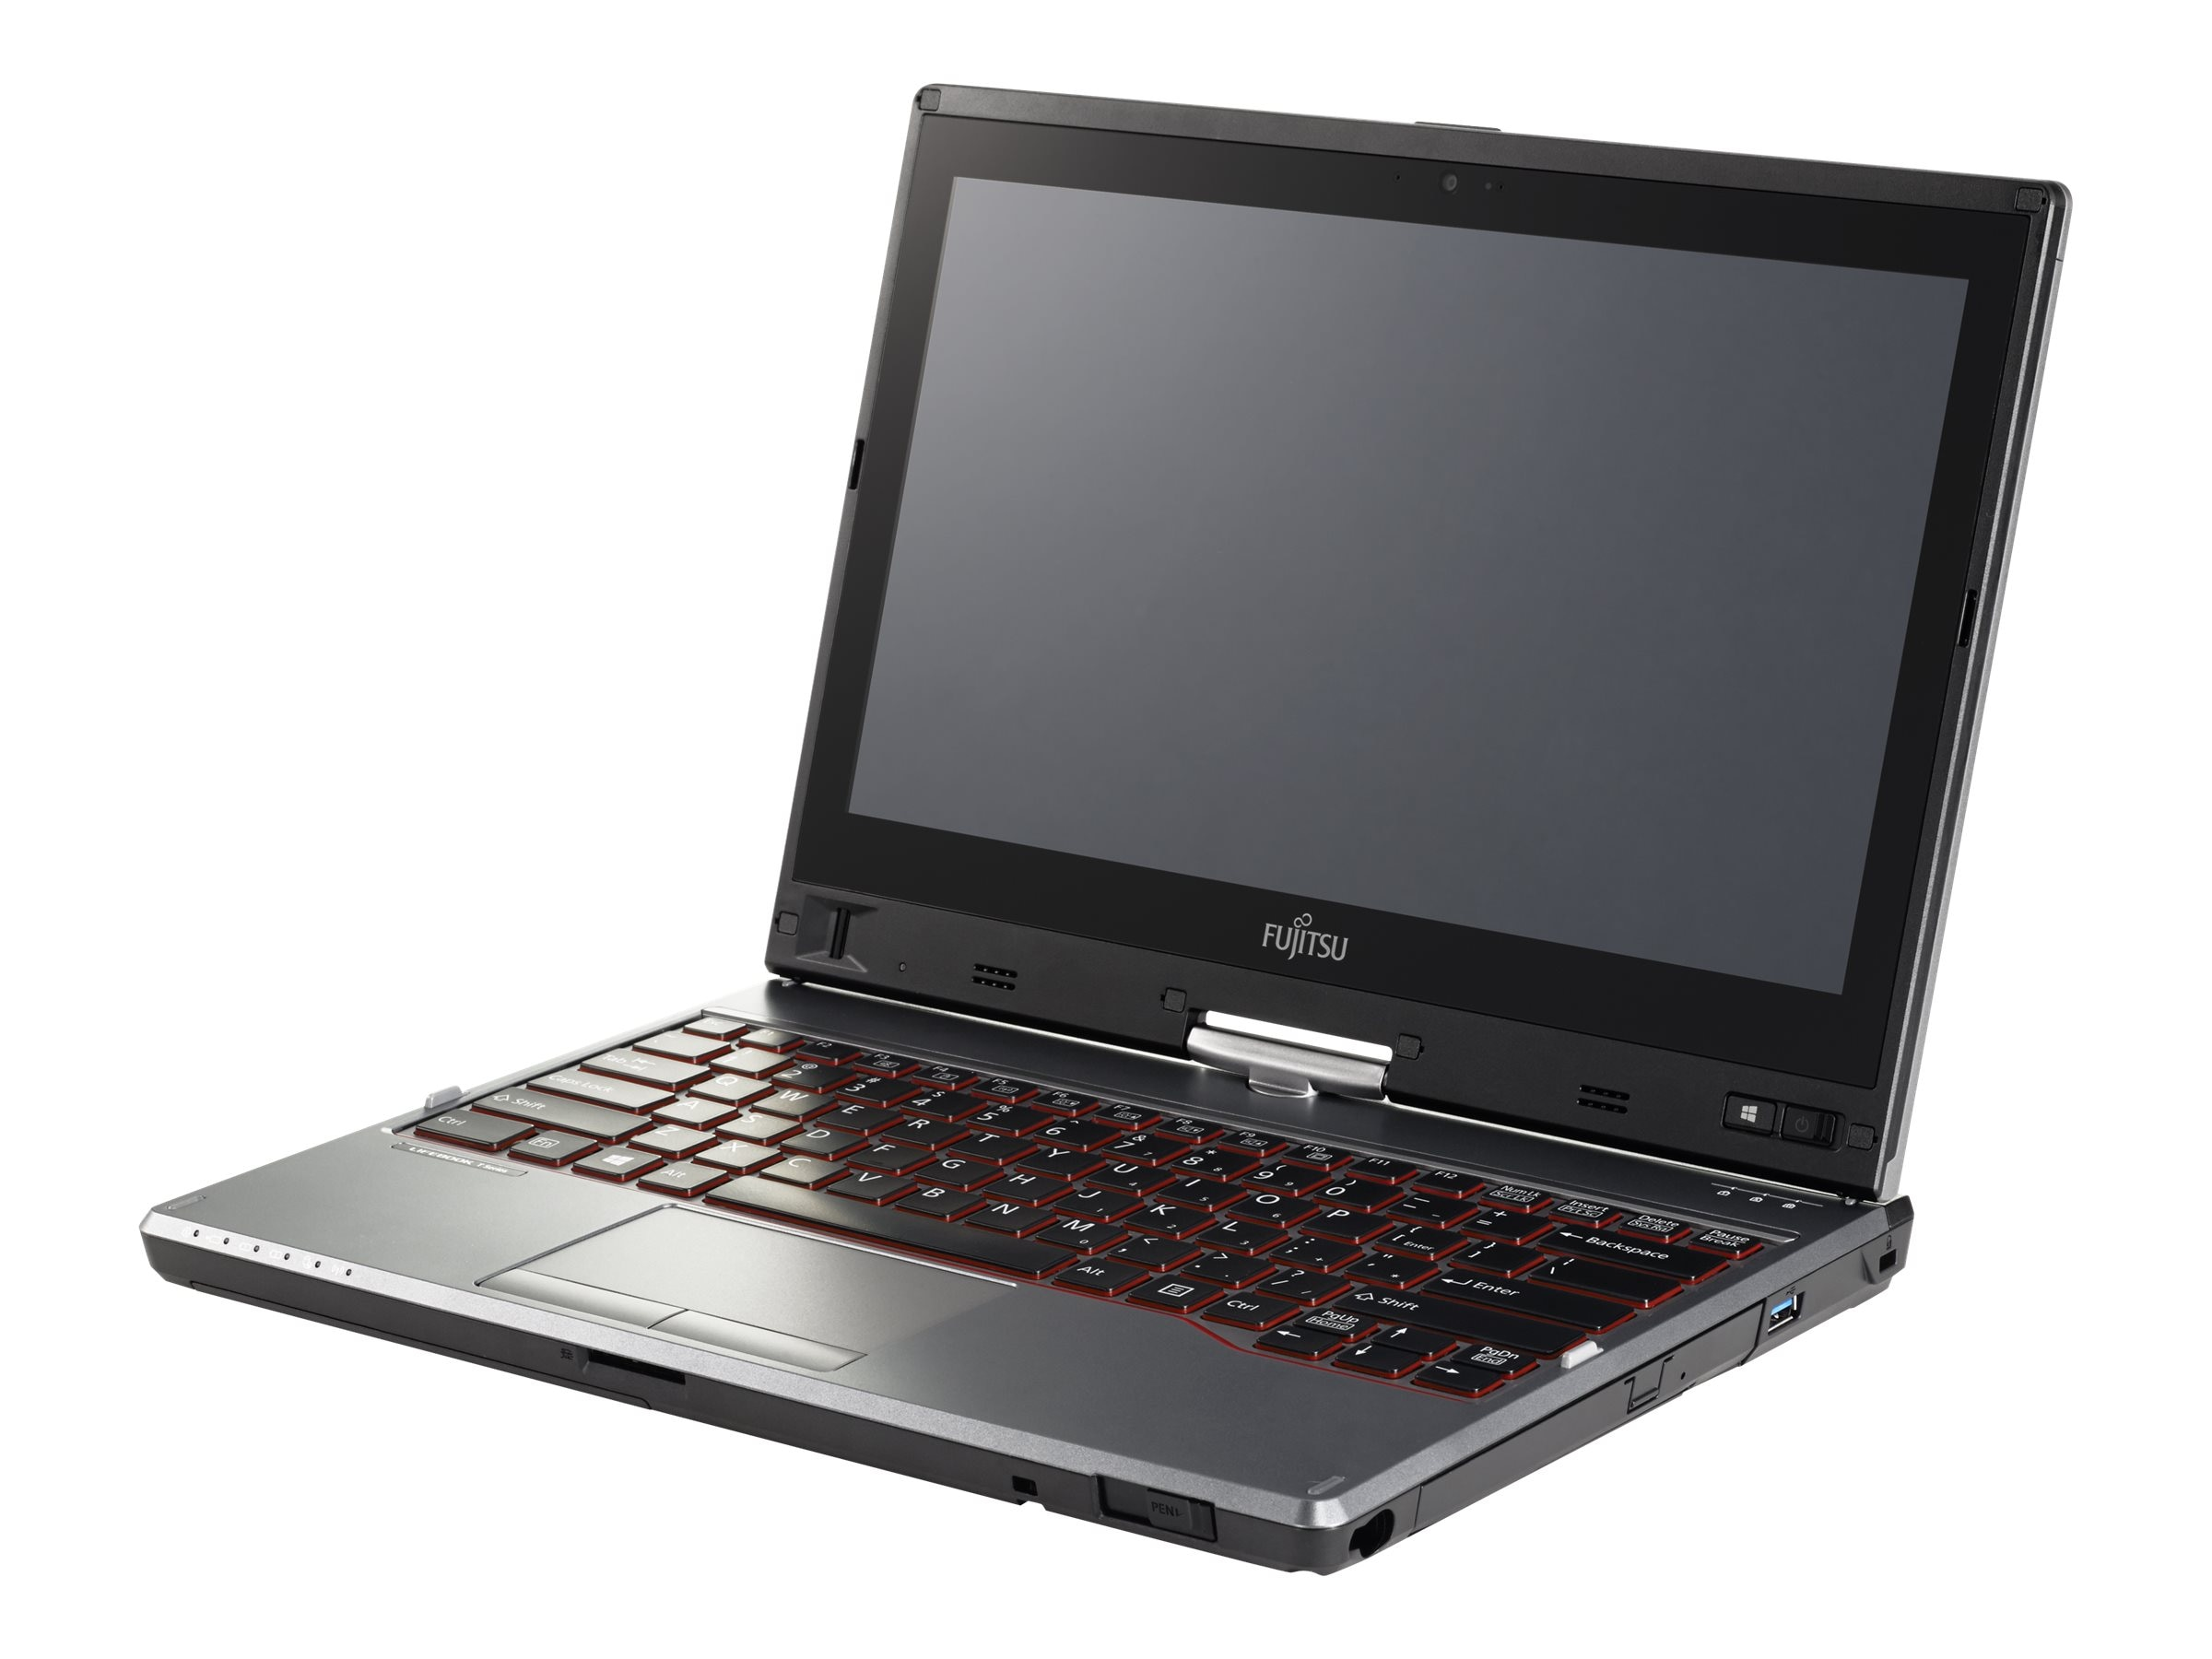 Fujitsu X-BUY LifeBook T725 Core i3-5010U 2.1GHz 4GB 500GB ac abgn GNIC BT FR WC 6C 12.5 HD MT W7P64-W8.1P, XBUY-T725-001, 18492664, Notebooks - Convertible